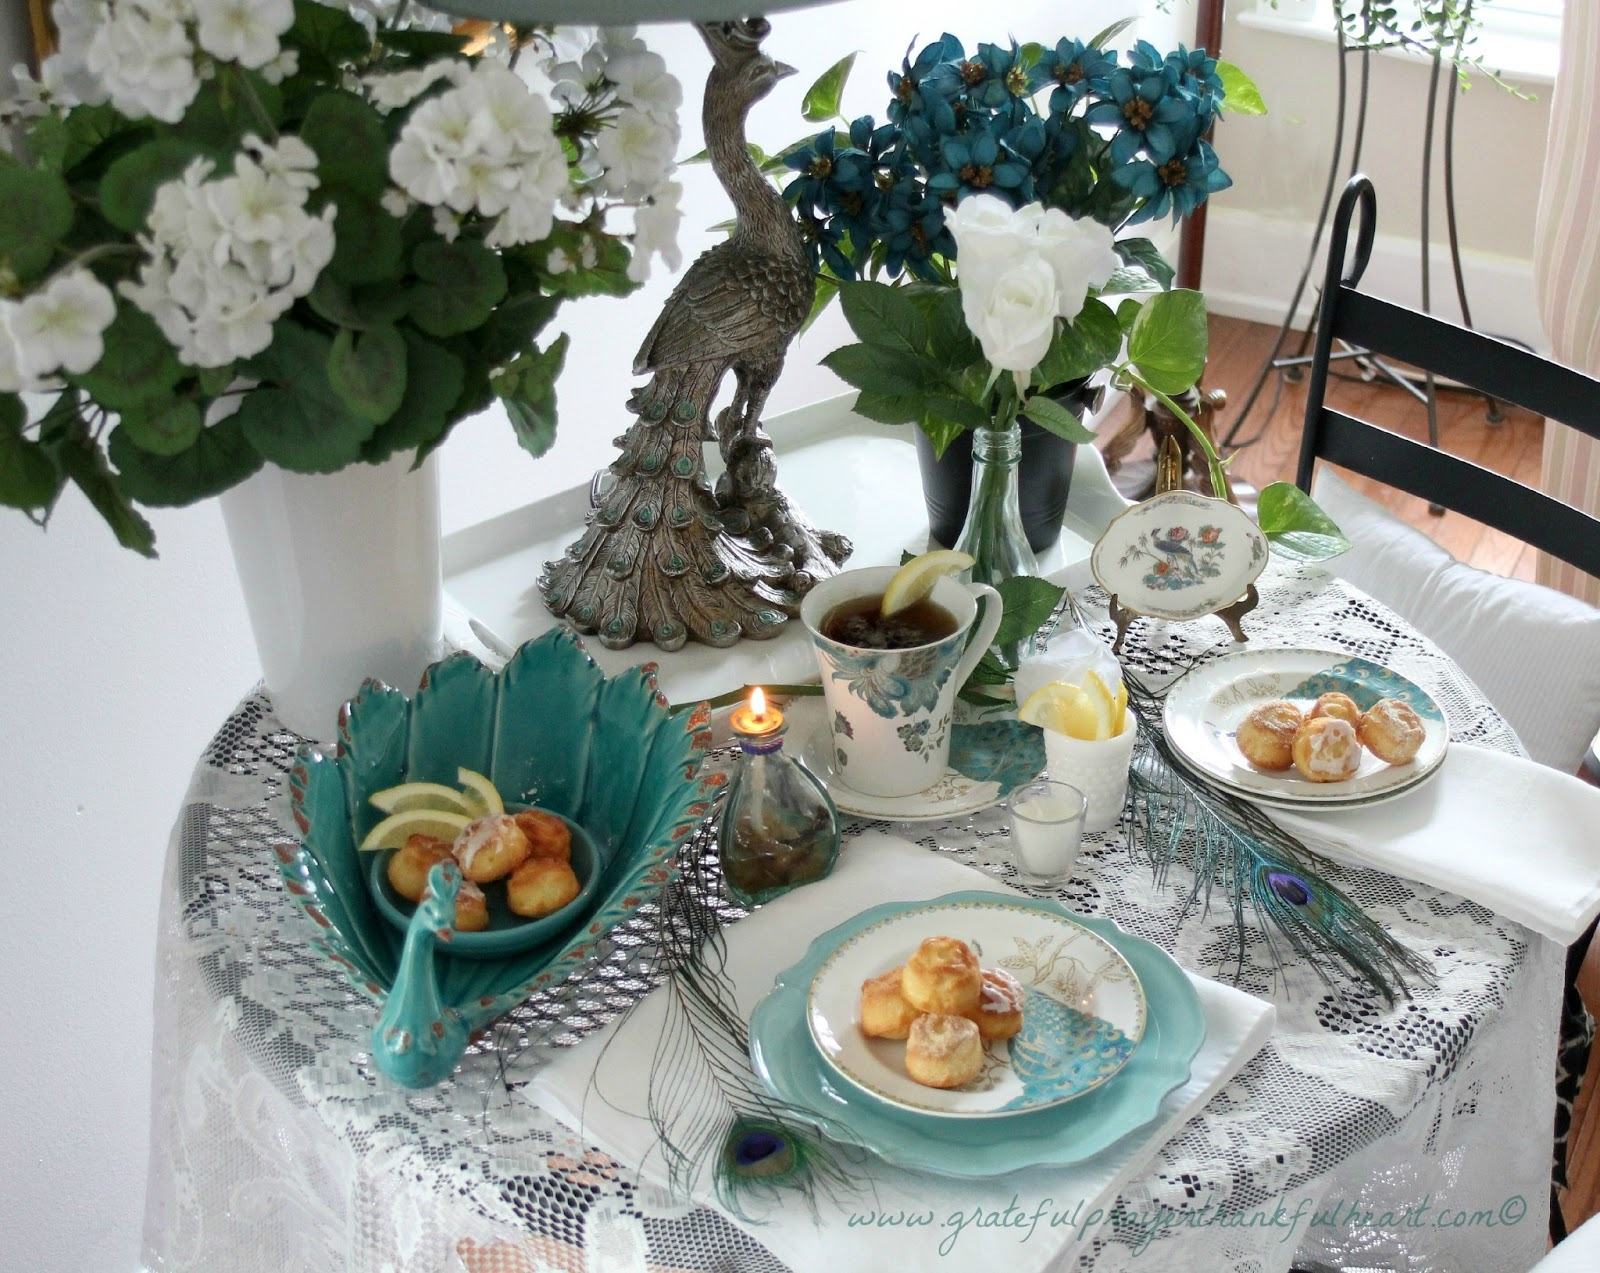 Peacocks And Lemon Flower Teacakes For Tablescape